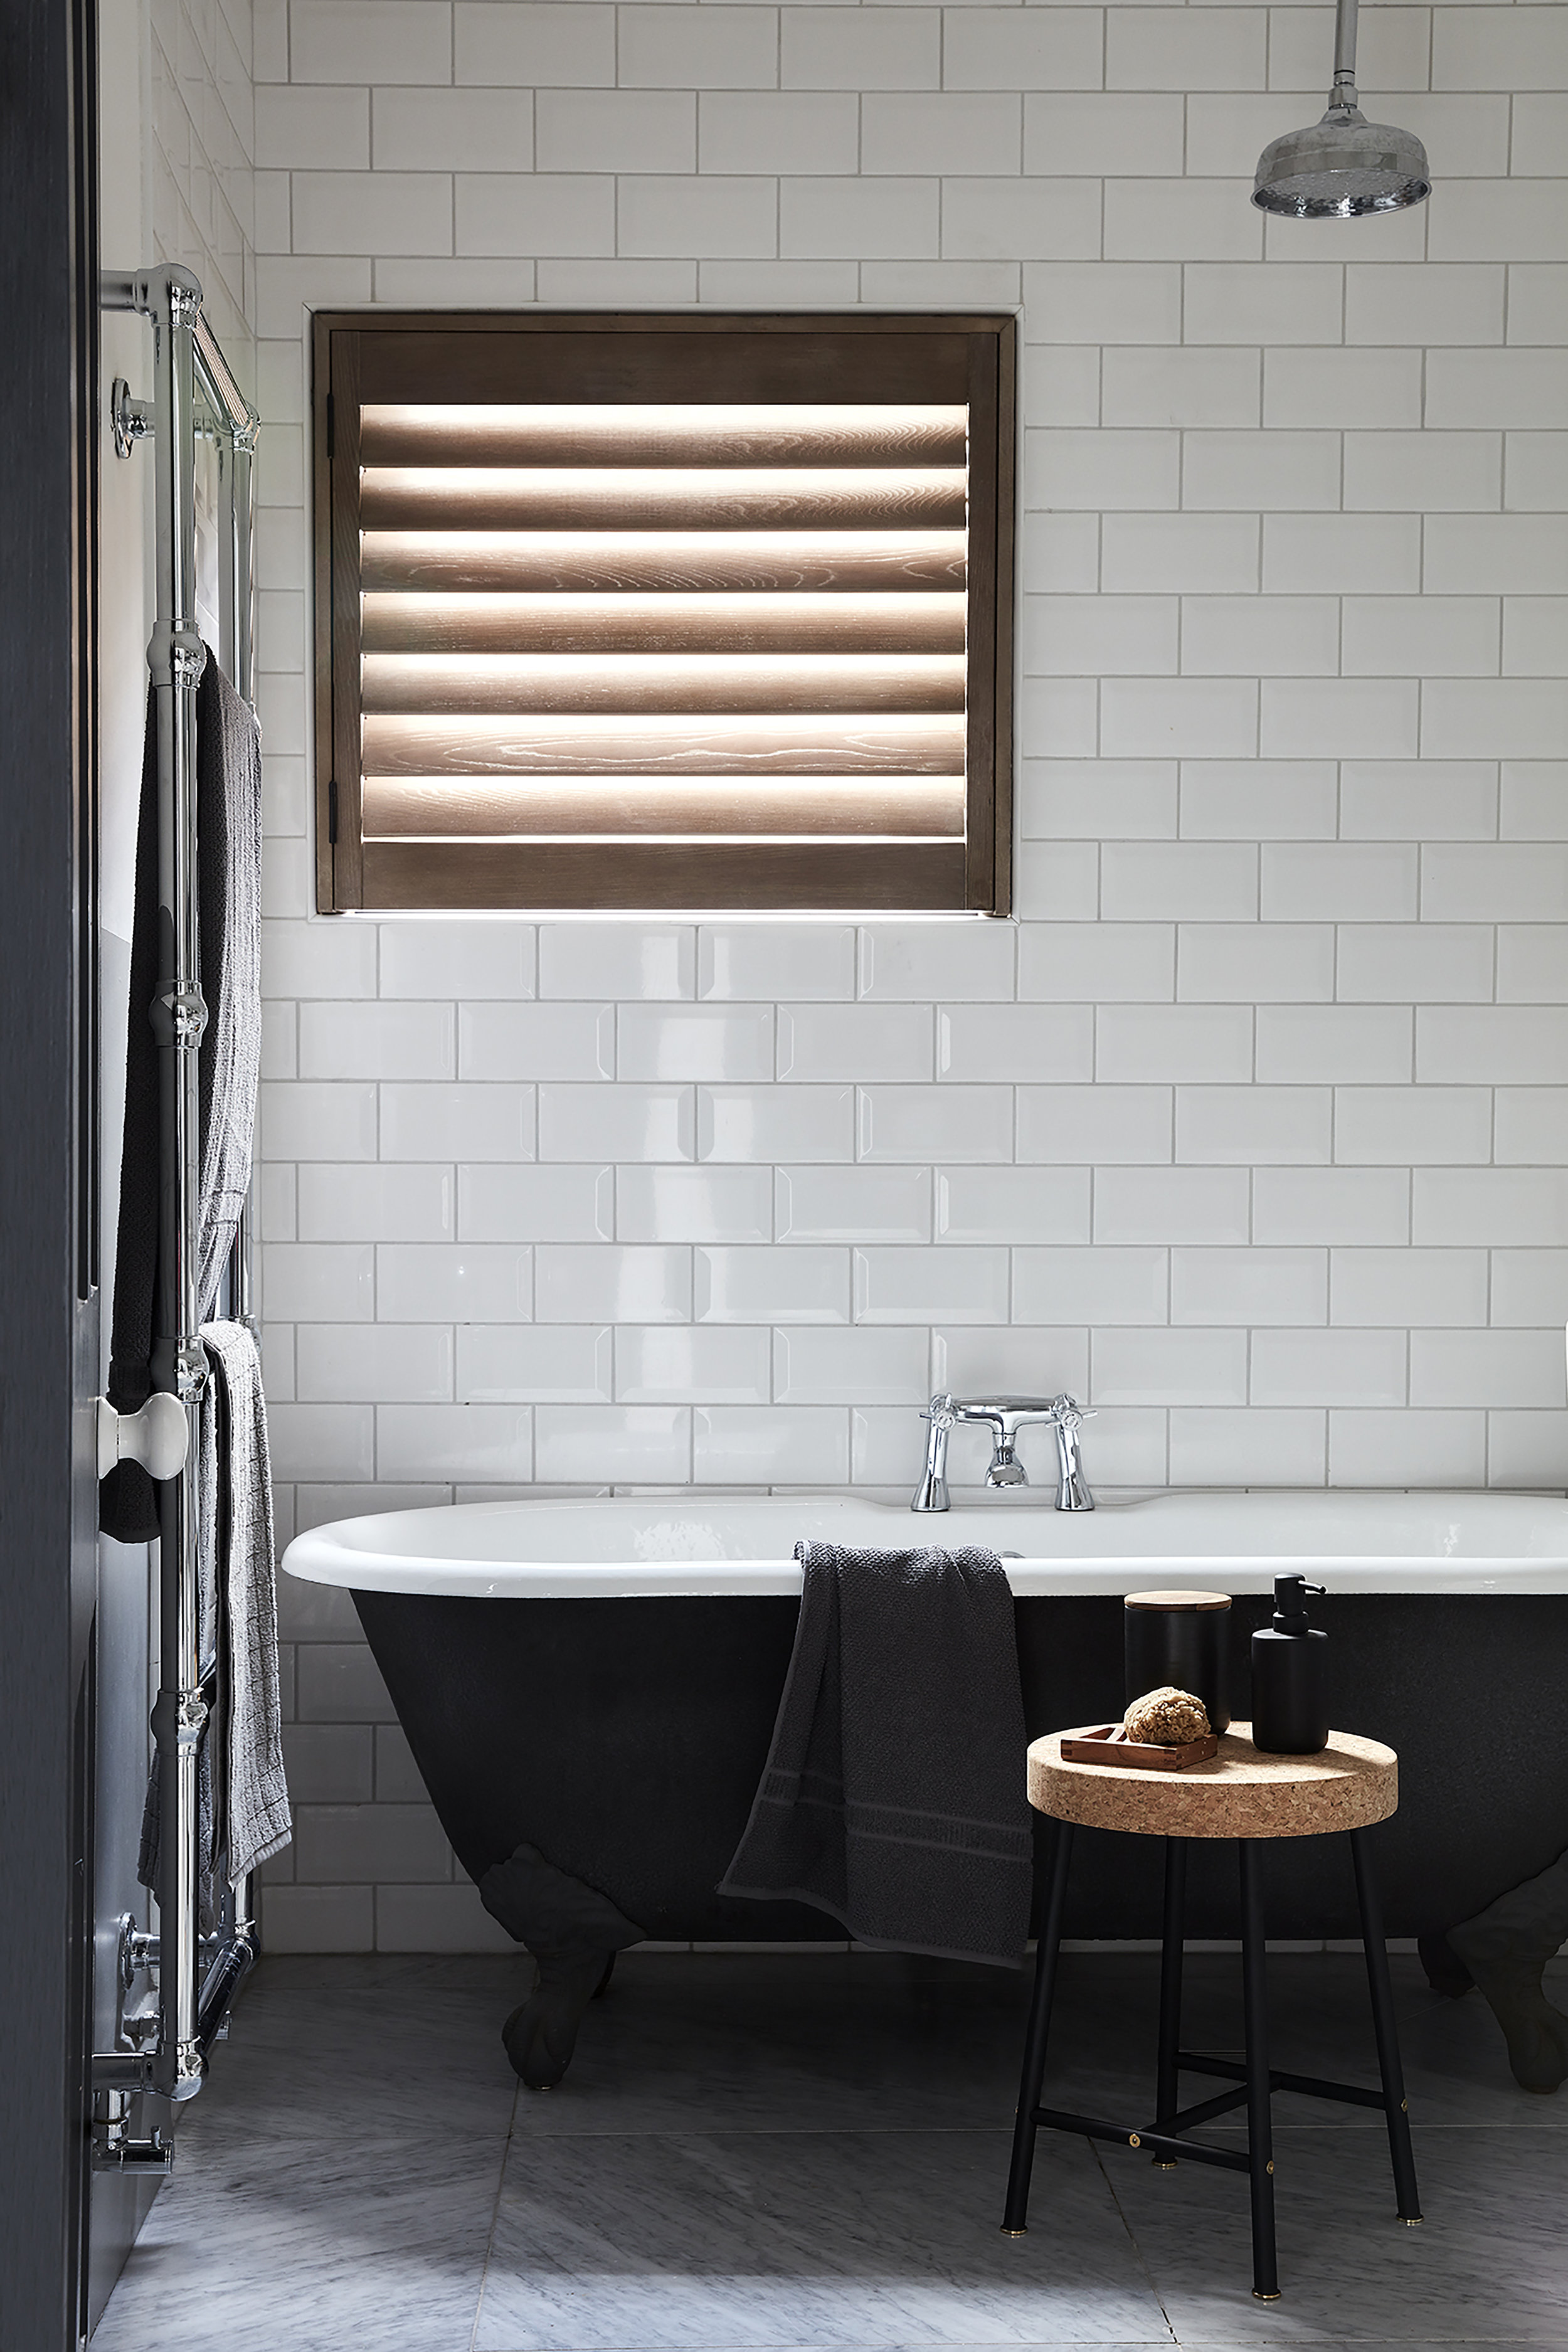 Special Shape Shutters-   Window arches, hexagons, circles, triangles – they can all have shutters made for them where blinds or curtains just wouldn't work.